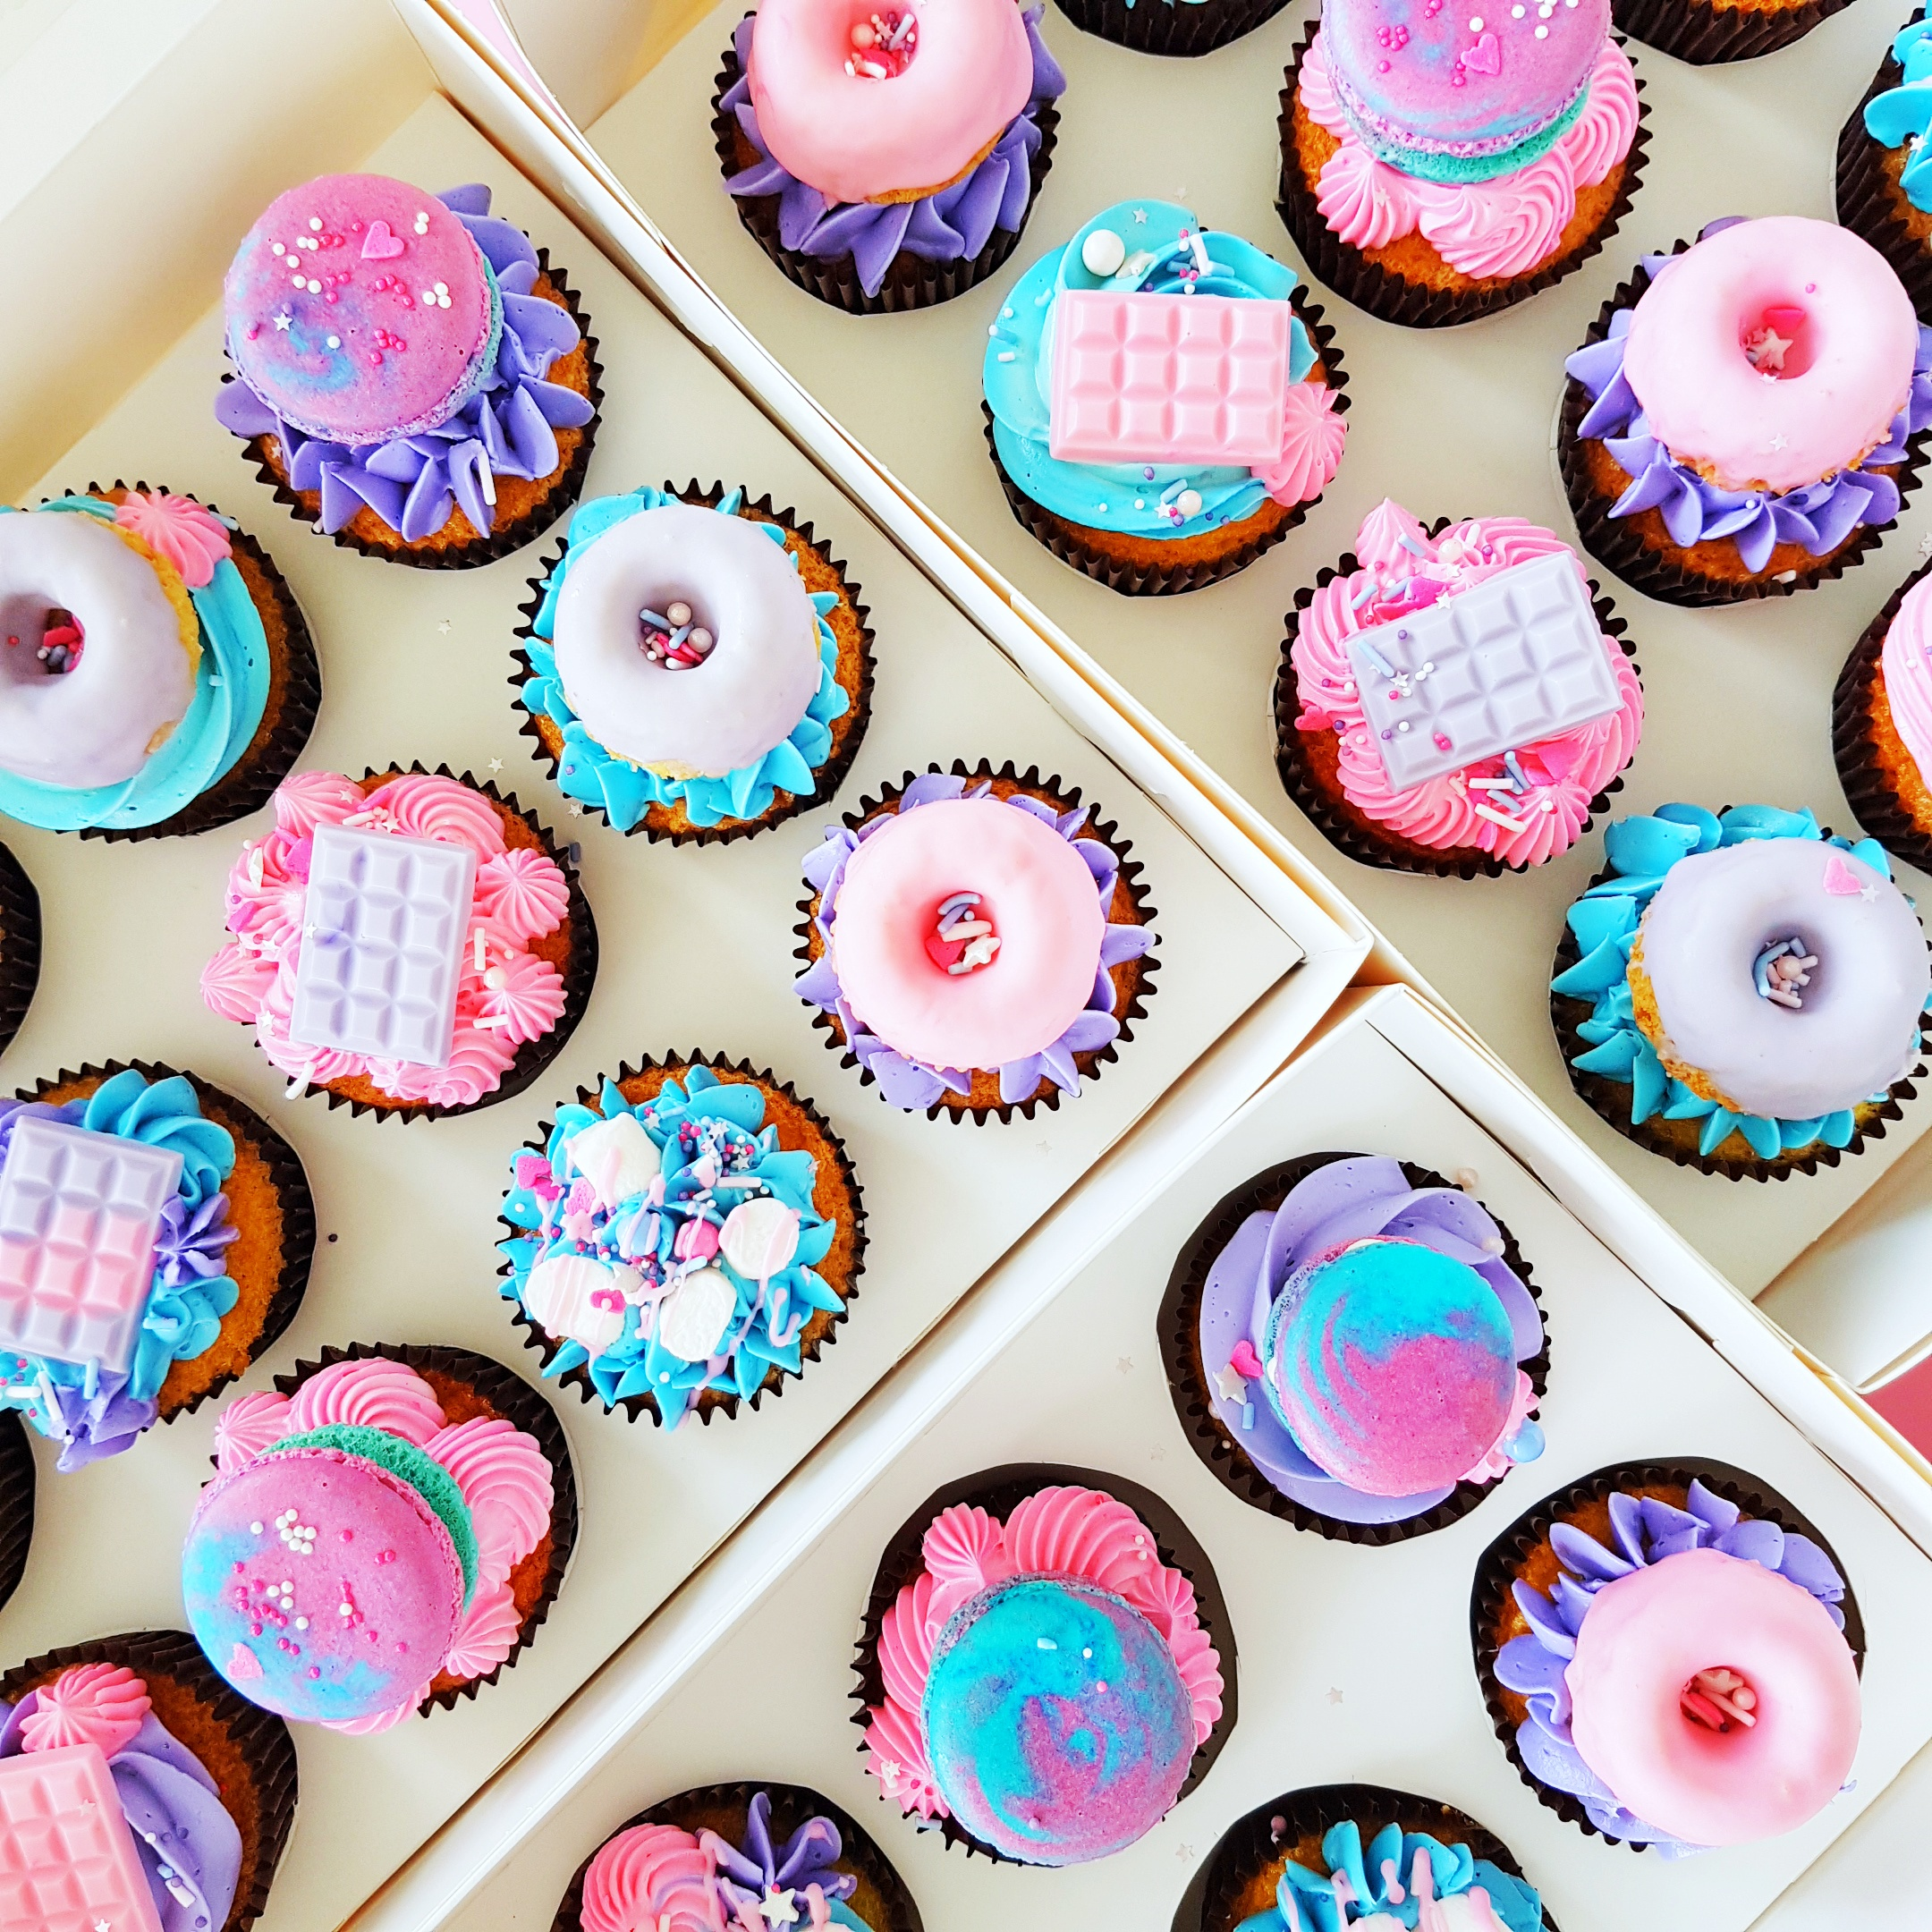 Cupcakes with toppings - The Baking Experiment